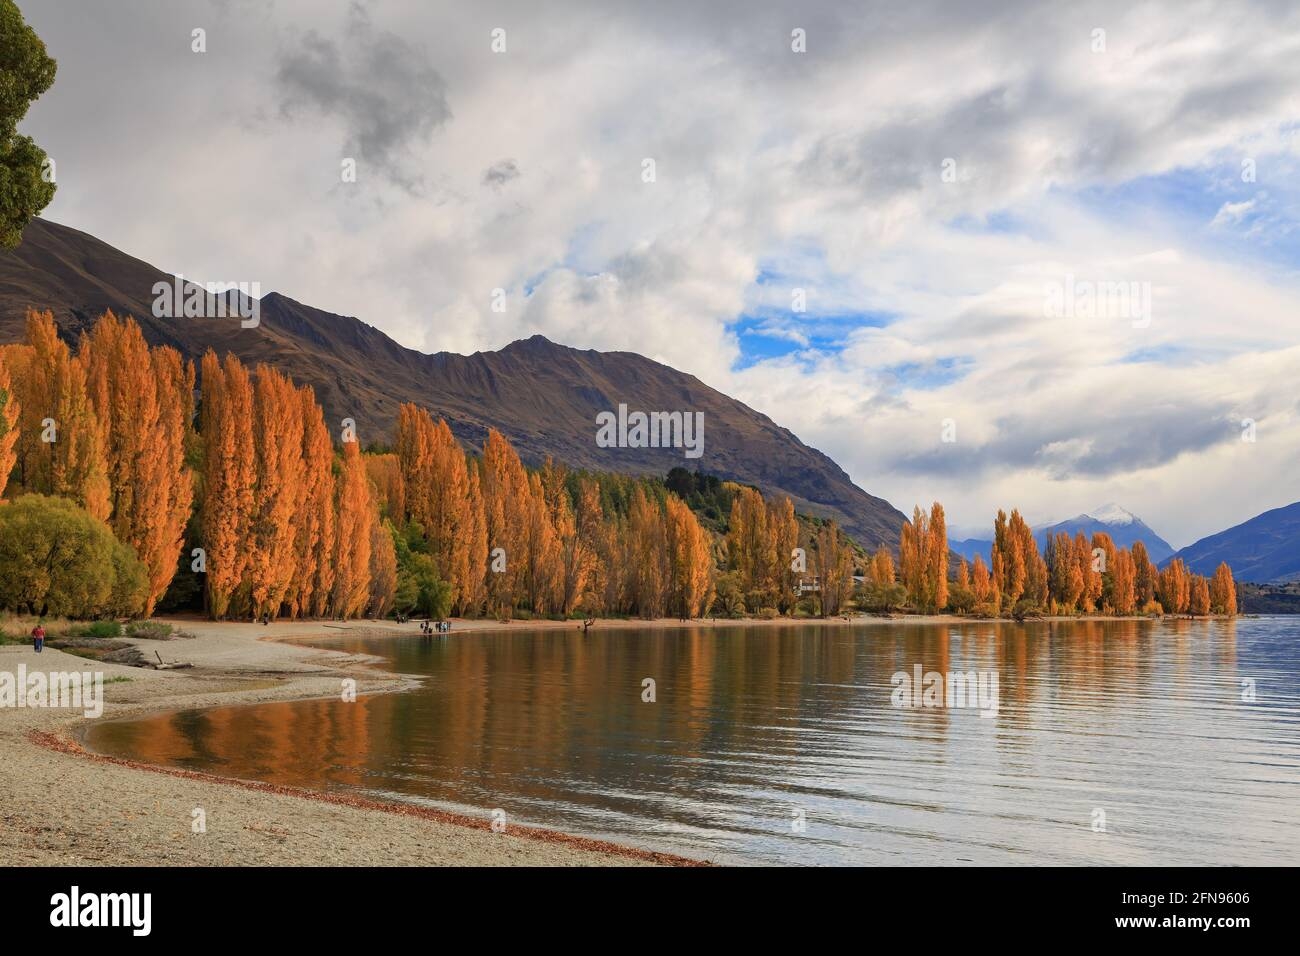 Lake Wanaka, New Zealand, in autumn. The shore of the lake is surrounded by poplars with bright fall foliage Stock Photo